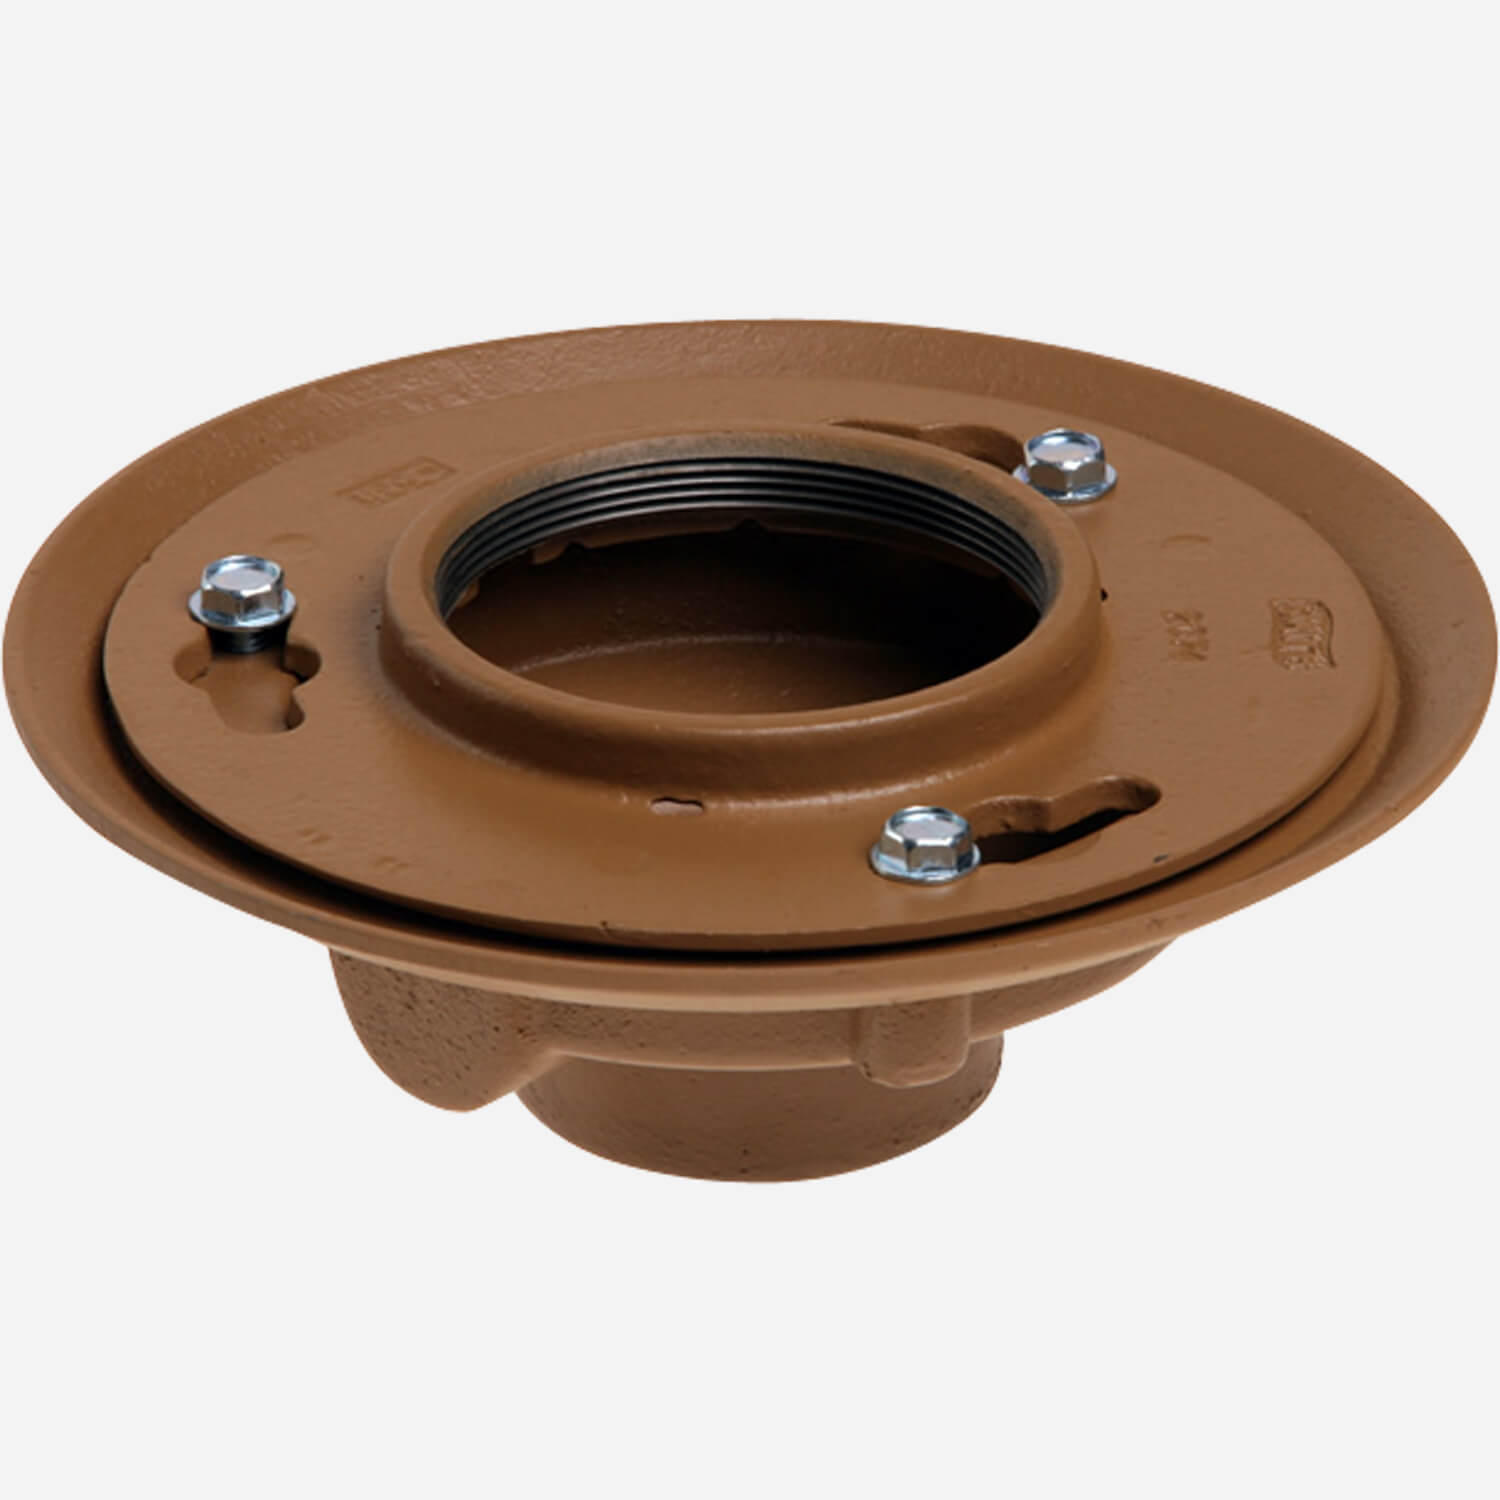 Floor Drains with Adjustable Strainer Heads